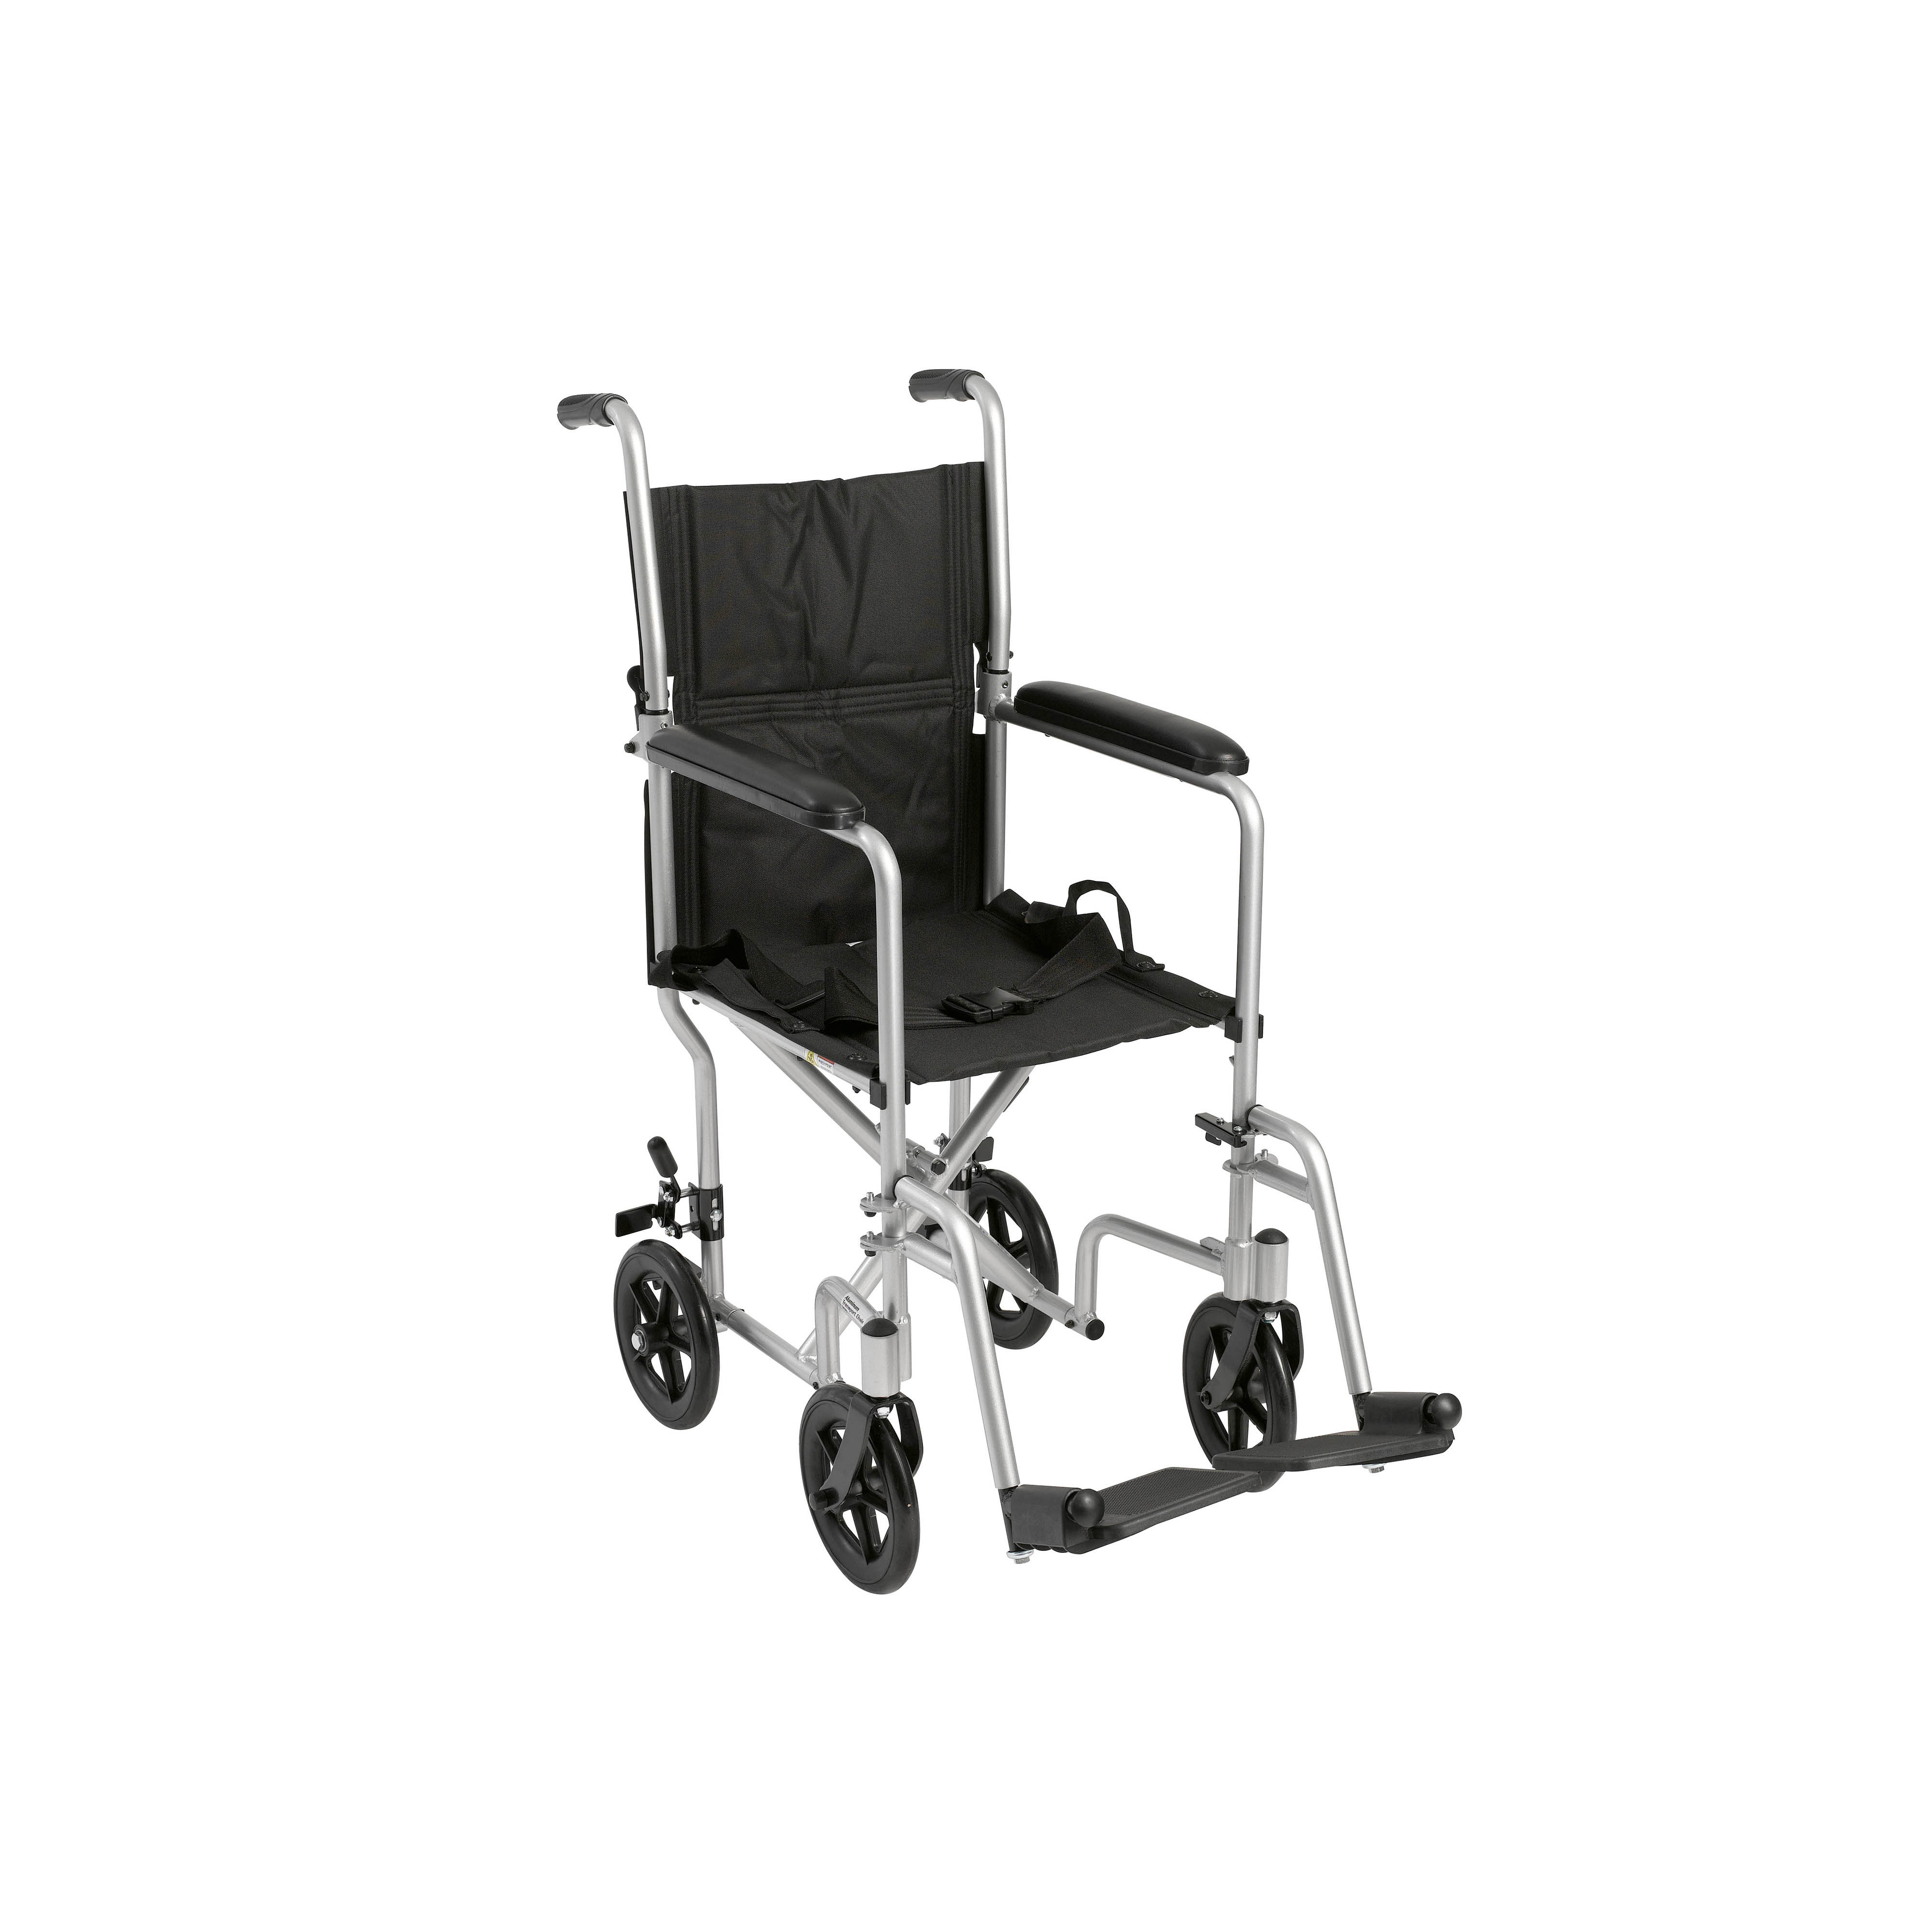 transport wheel chair barber shop chairs for sale used drive medical lightweight wheelchair 17 seat silver walmart com